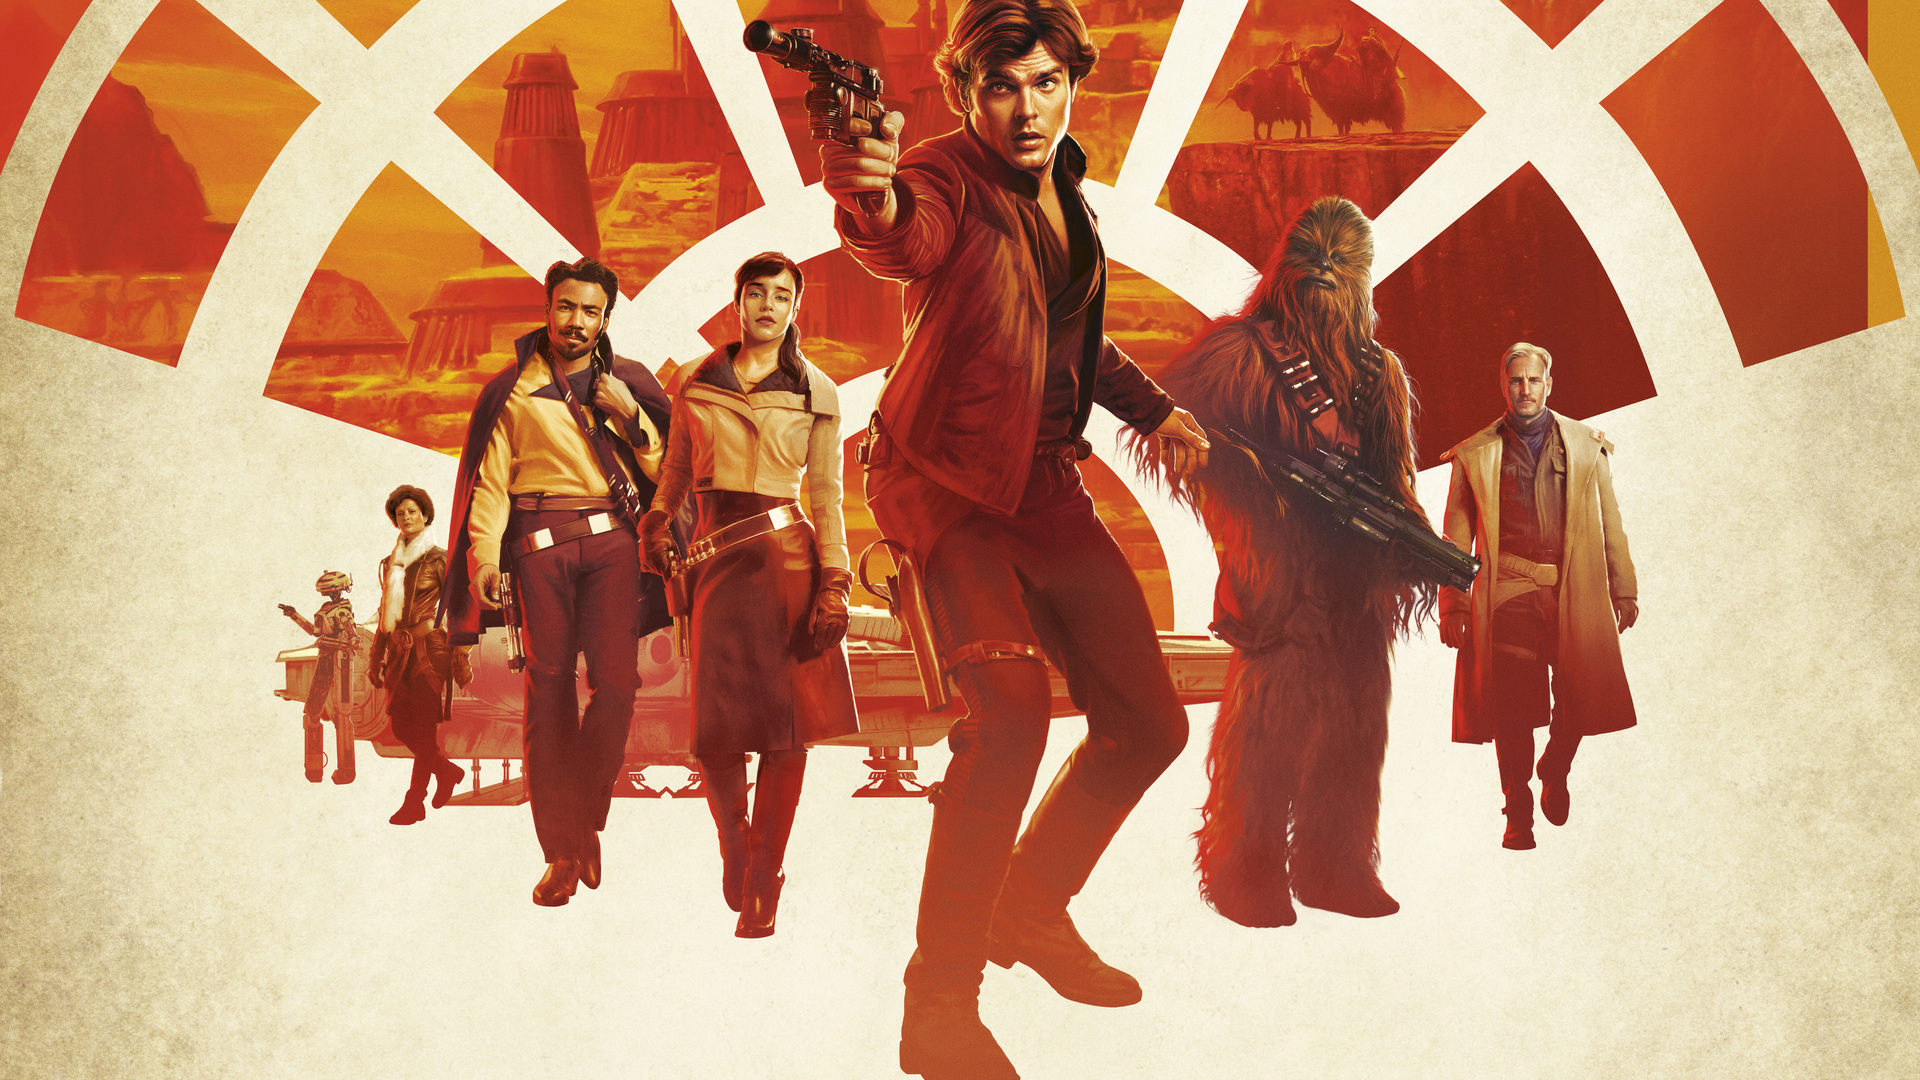 Solo A Star Wars Story Movie 8k - Solo A Star Wars Story Movie 8k - Wallpapers, 4k